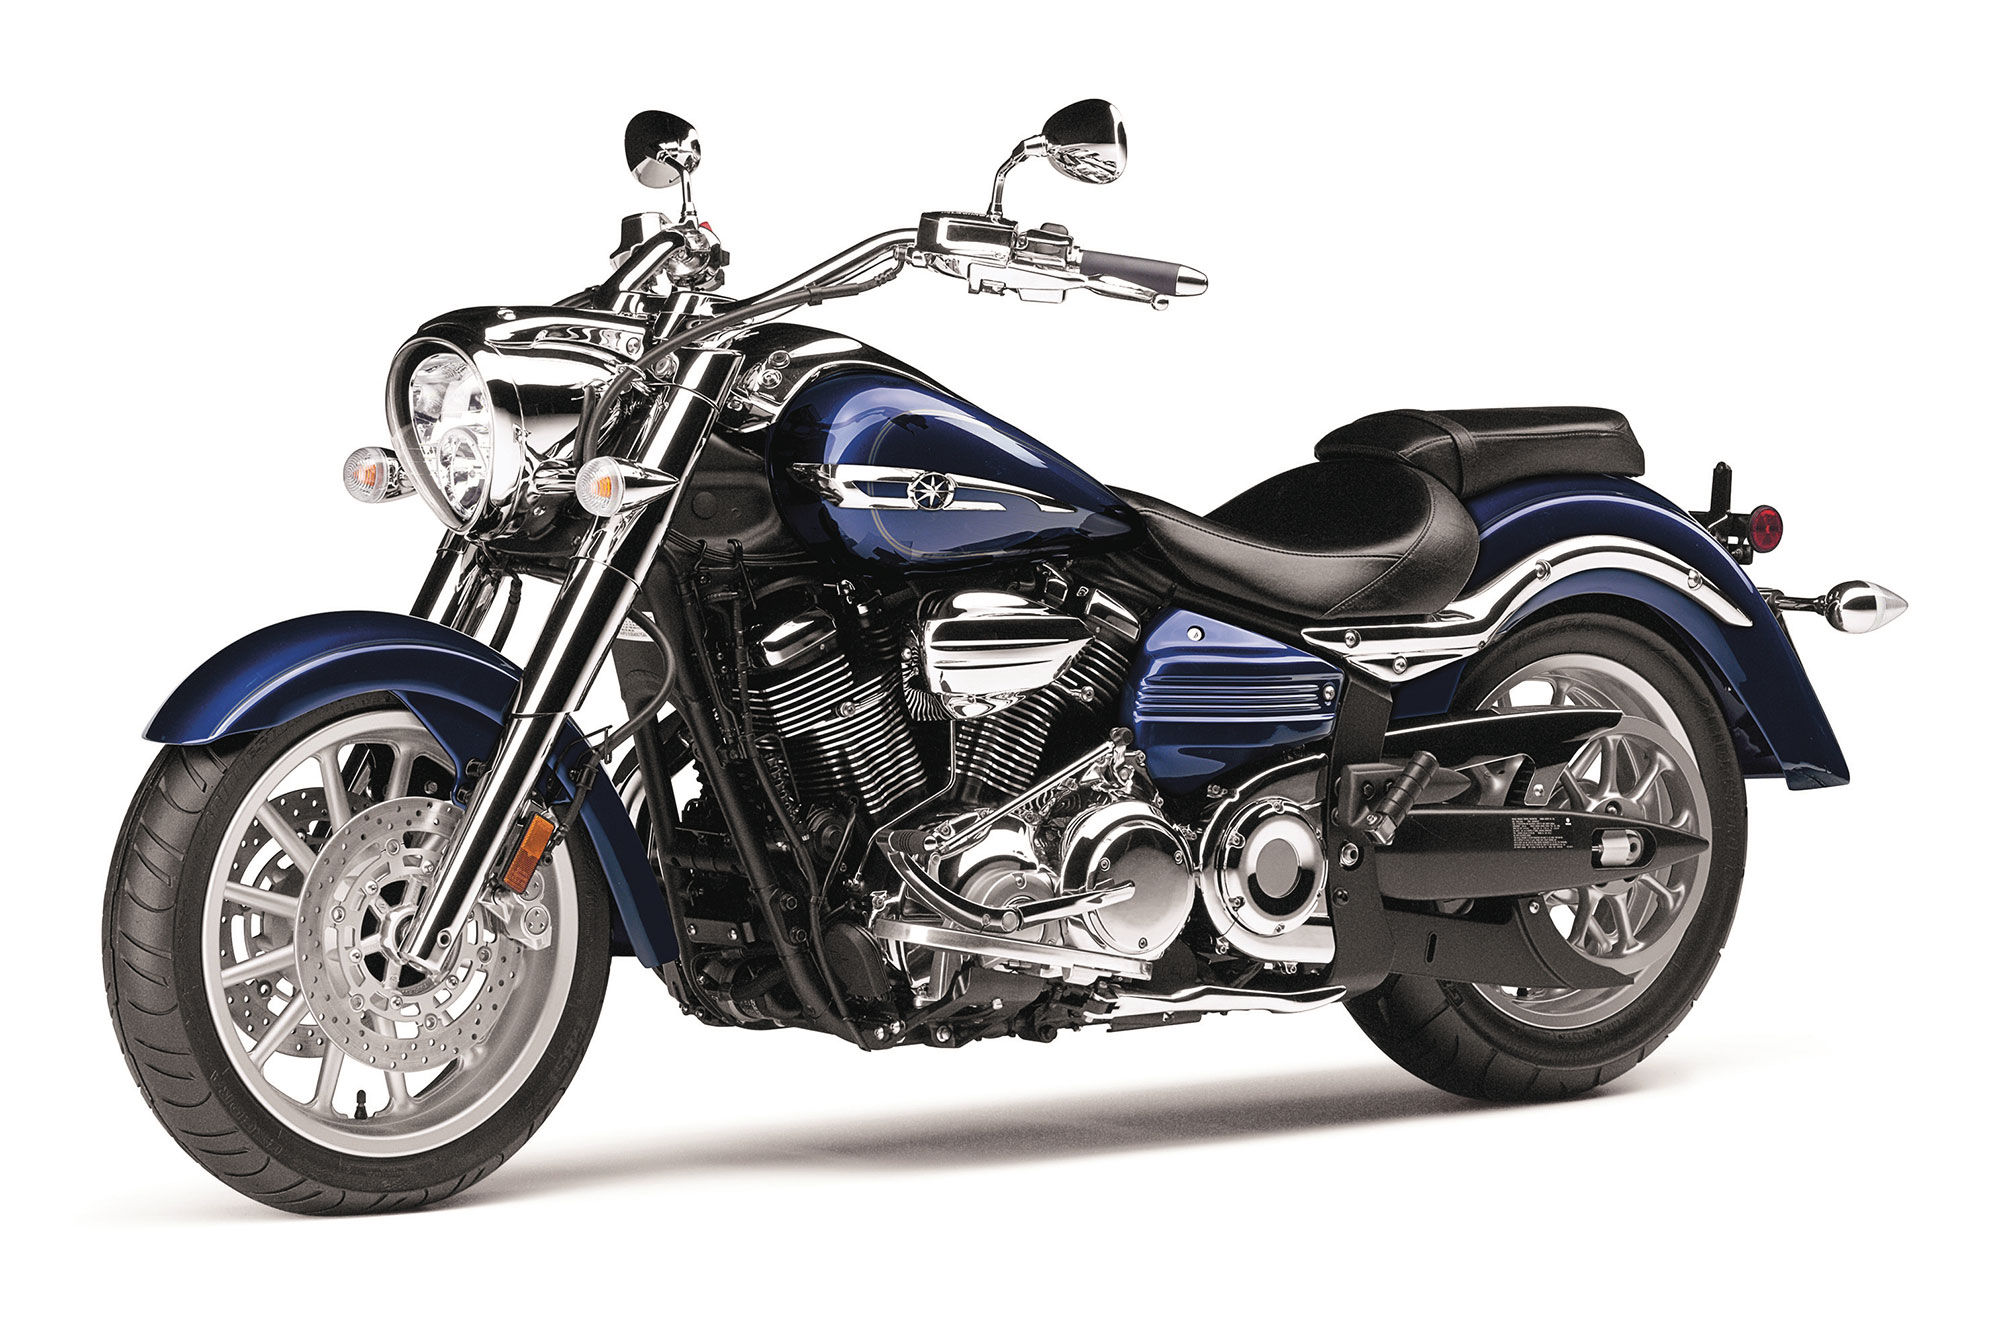 2011 Yamaha Stryker Wiring Diagram Schematic Diagrams Motorcycles 2013 Stratoliner S Block And U2022 R1 02 03